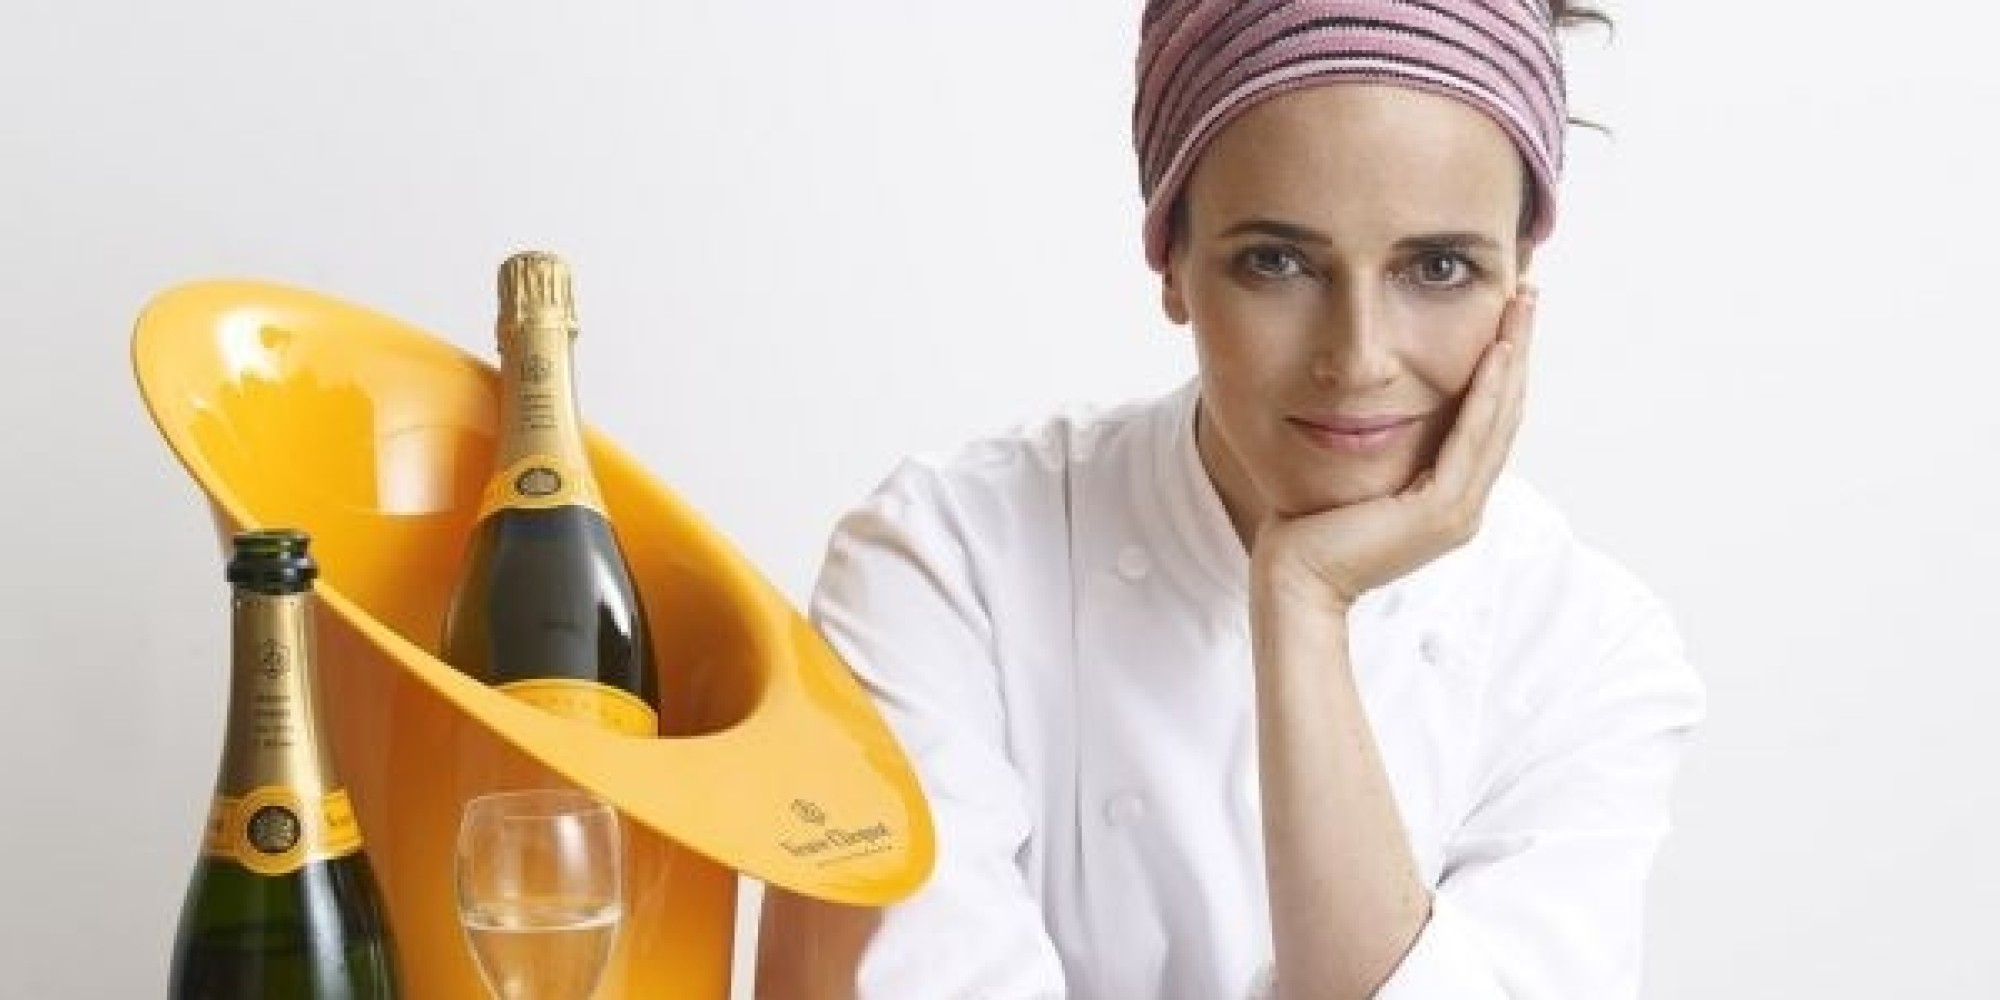 World's Best Female Chef Helena Rizzo